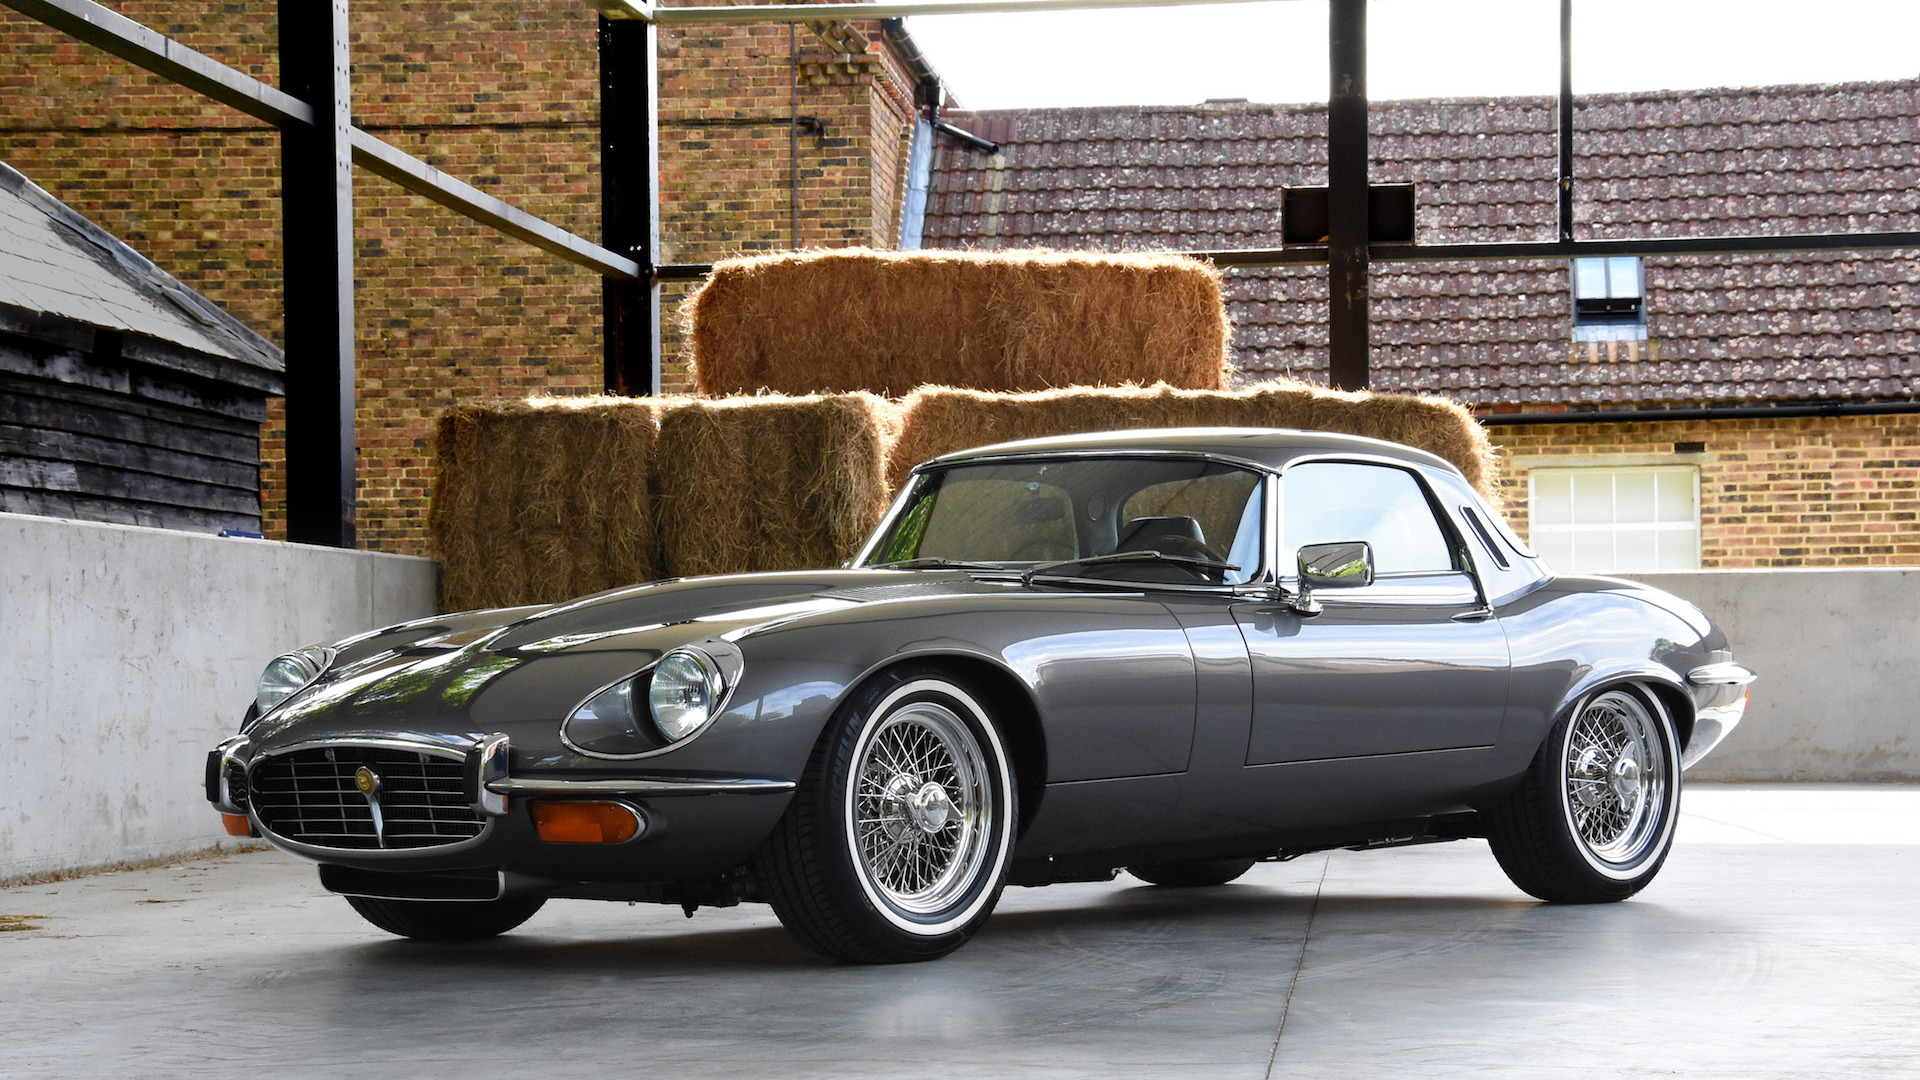 E-Type UK Series 3 restomod with 6.1-liter V-12 engine